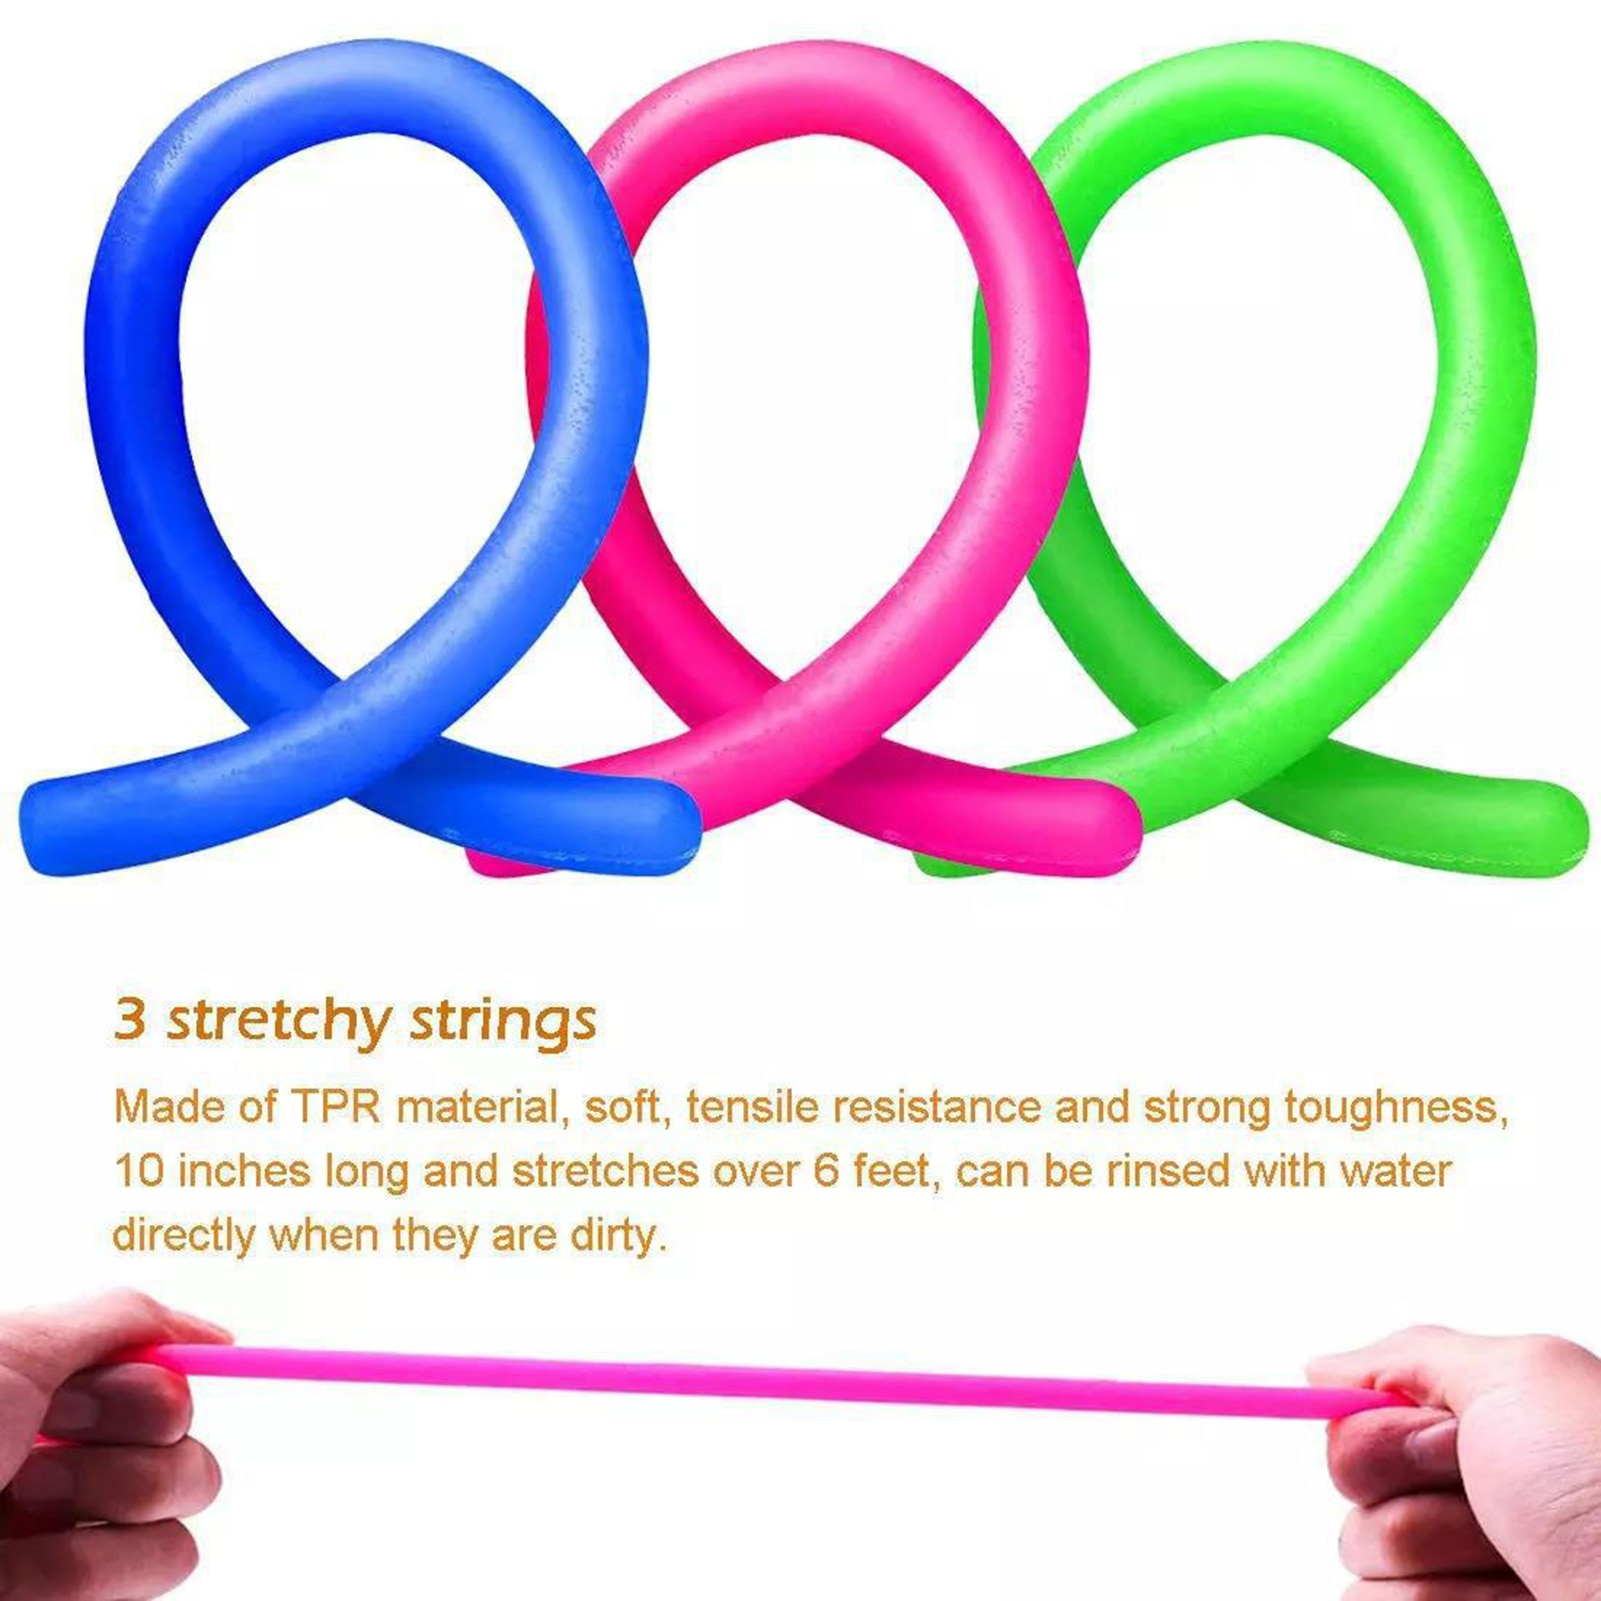 25 IN 1 Fidget Toys Stress Balls Pops Toy Antistress Squeezing Decompression Simple Dimple Toys Pack 18 Years Old Squishy it enlarge